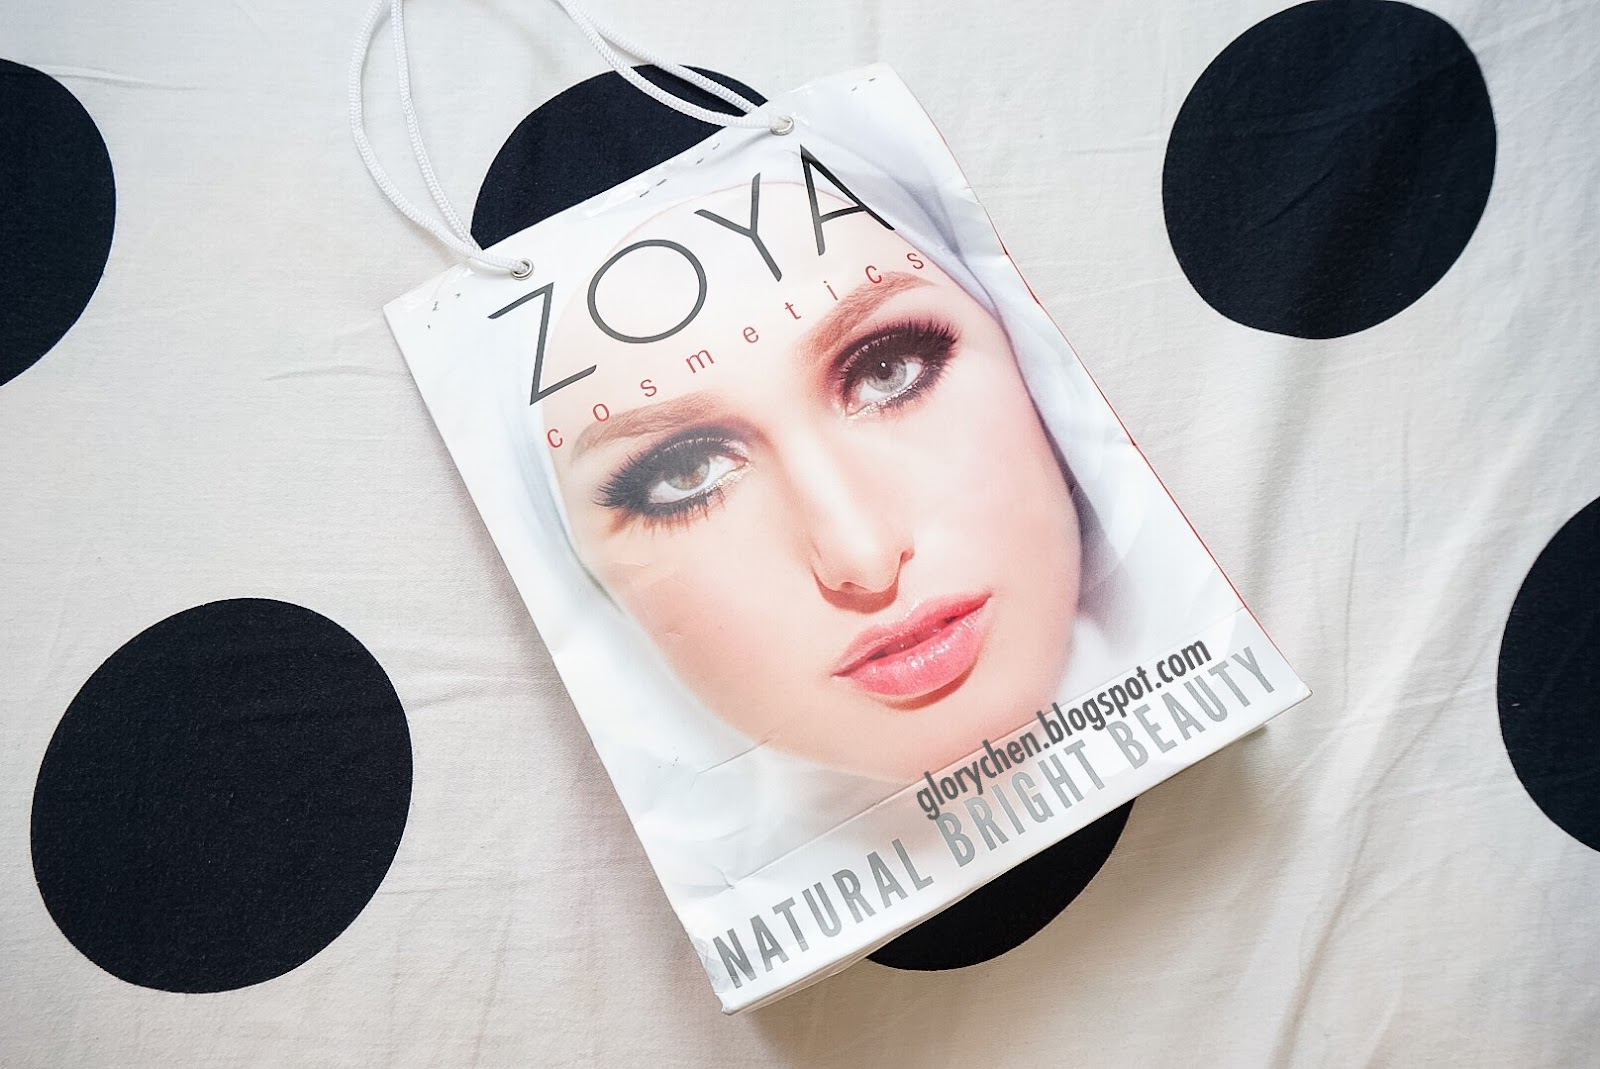 Zoya Lip Paint Pure Red Ultimate Eyeliner And Coloring Cosmetics Natural Beauty Atau By Nature Adalah Target Dari Dalam Memasarkan Produk2 Kosmetiknya Agar Wanita Indonesia Bisa Tampil Lebih Percaya Diri